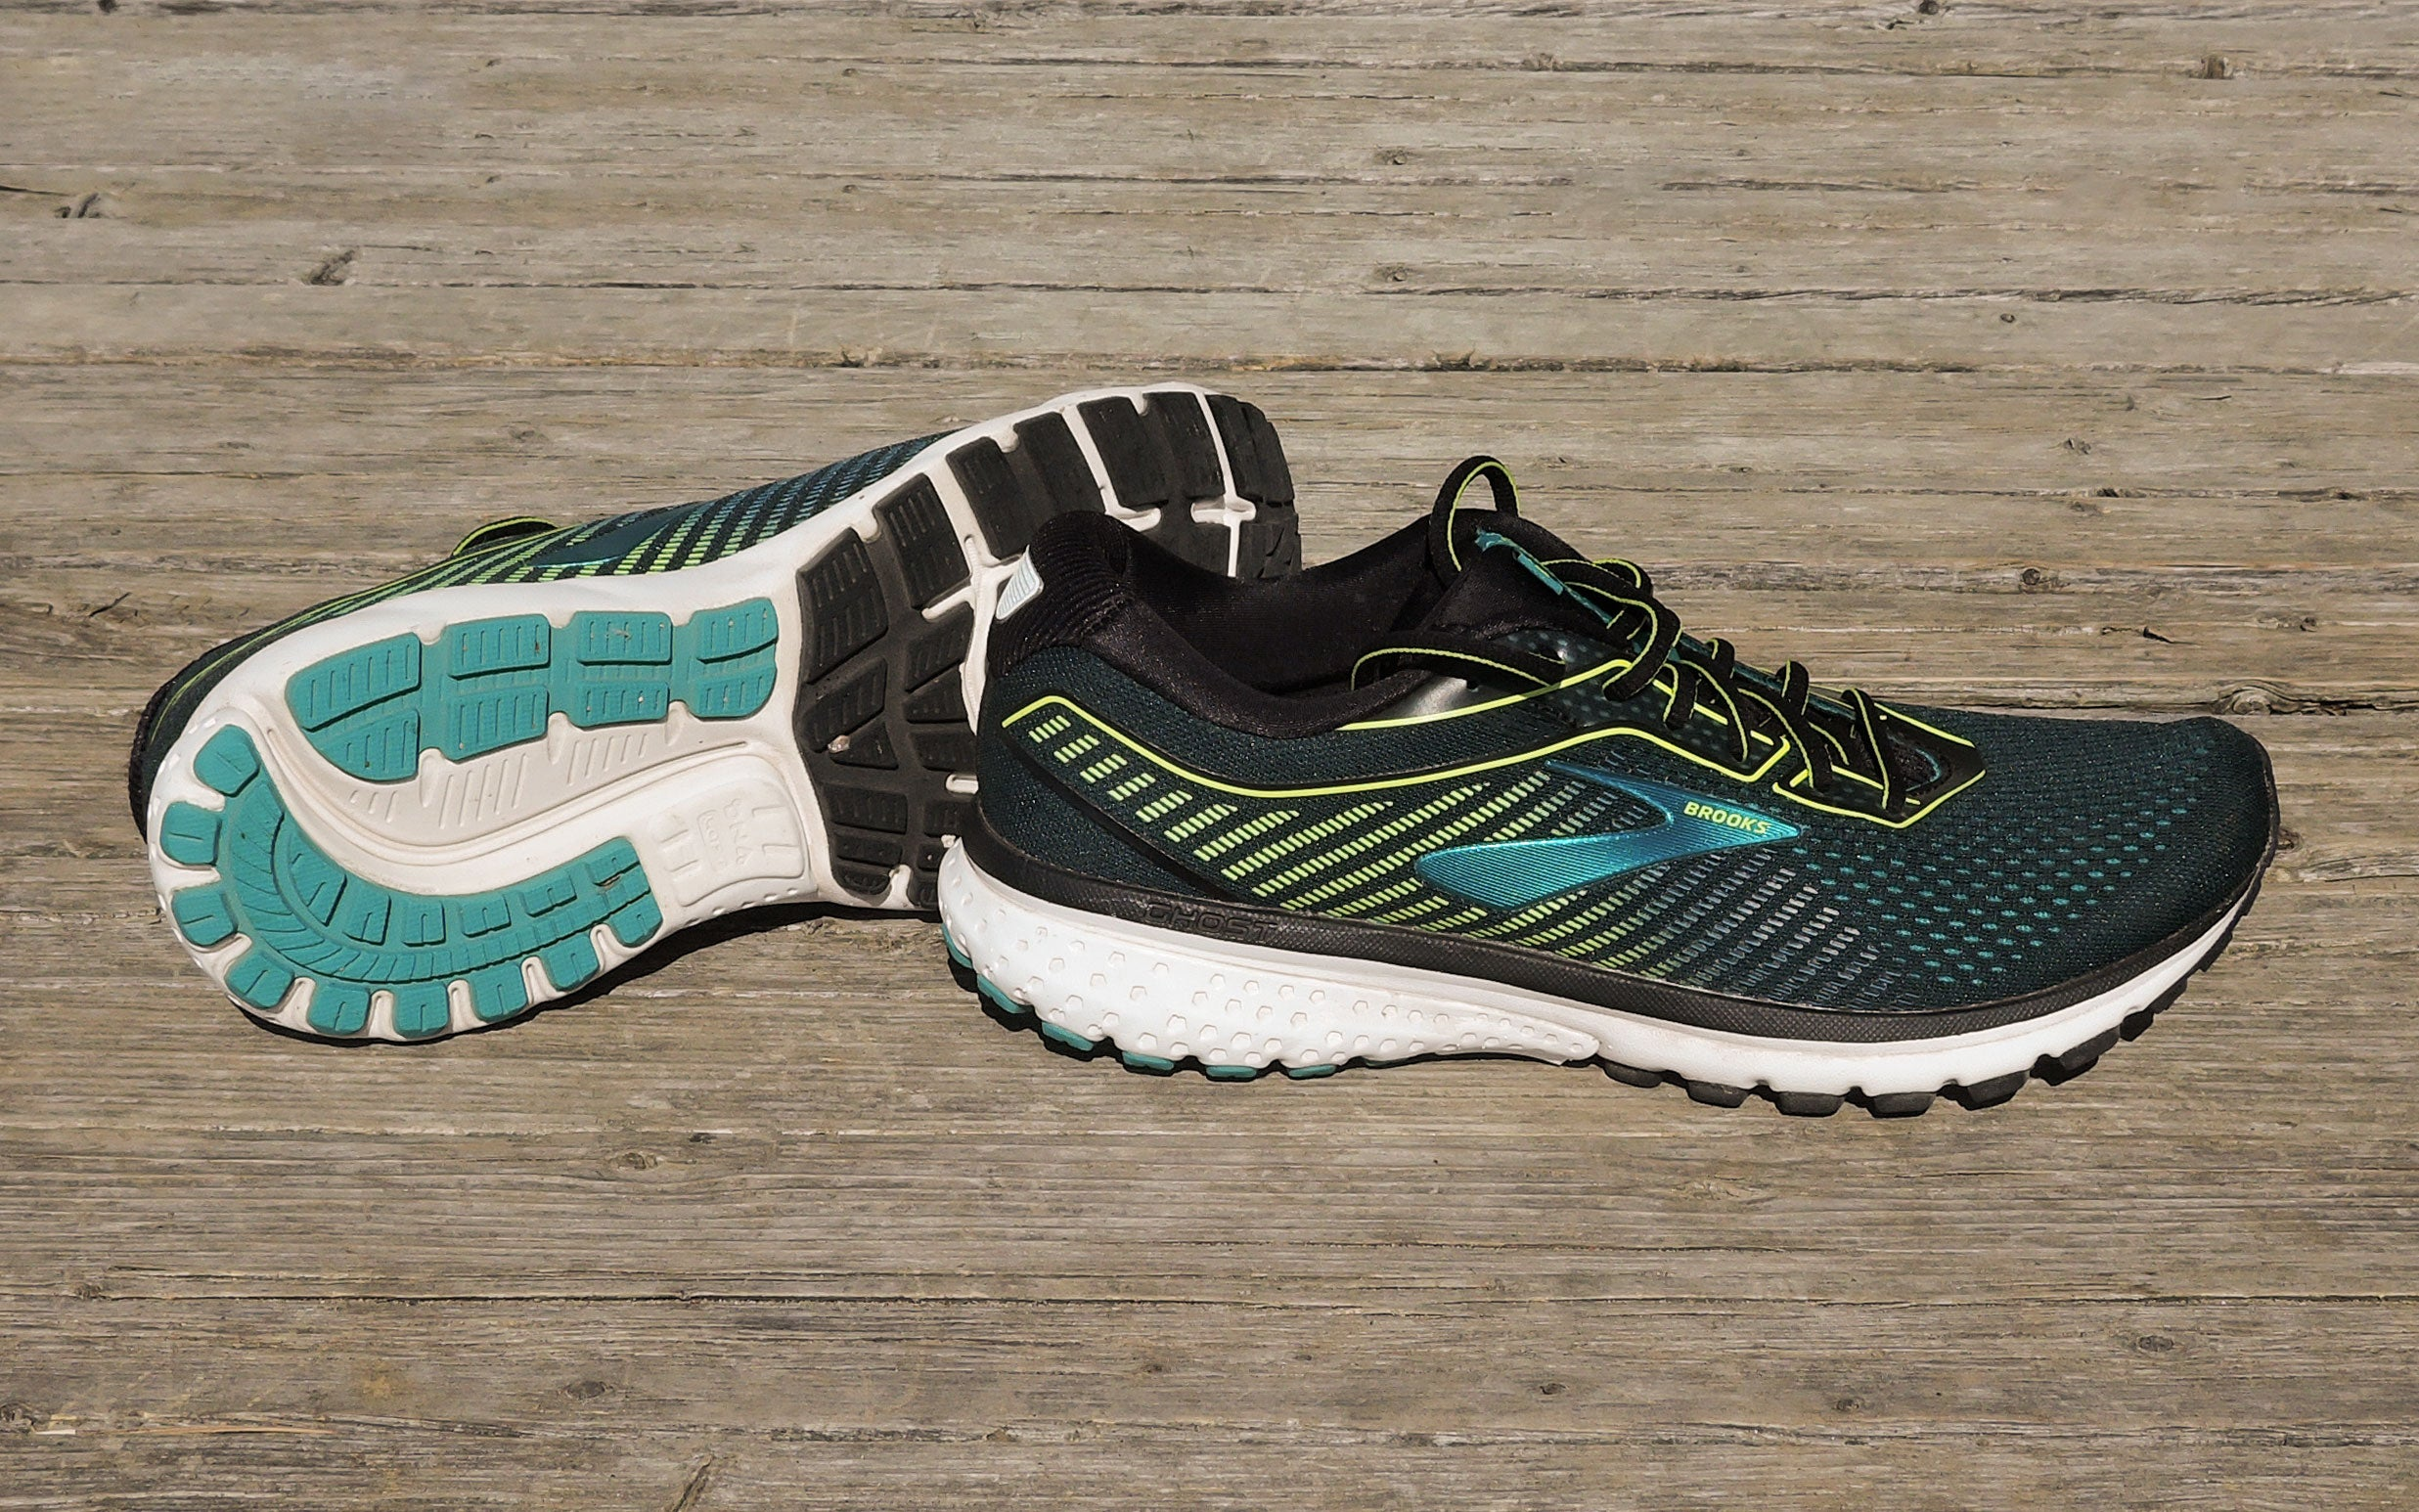 brooks Ghost trail running shoes with cushioning